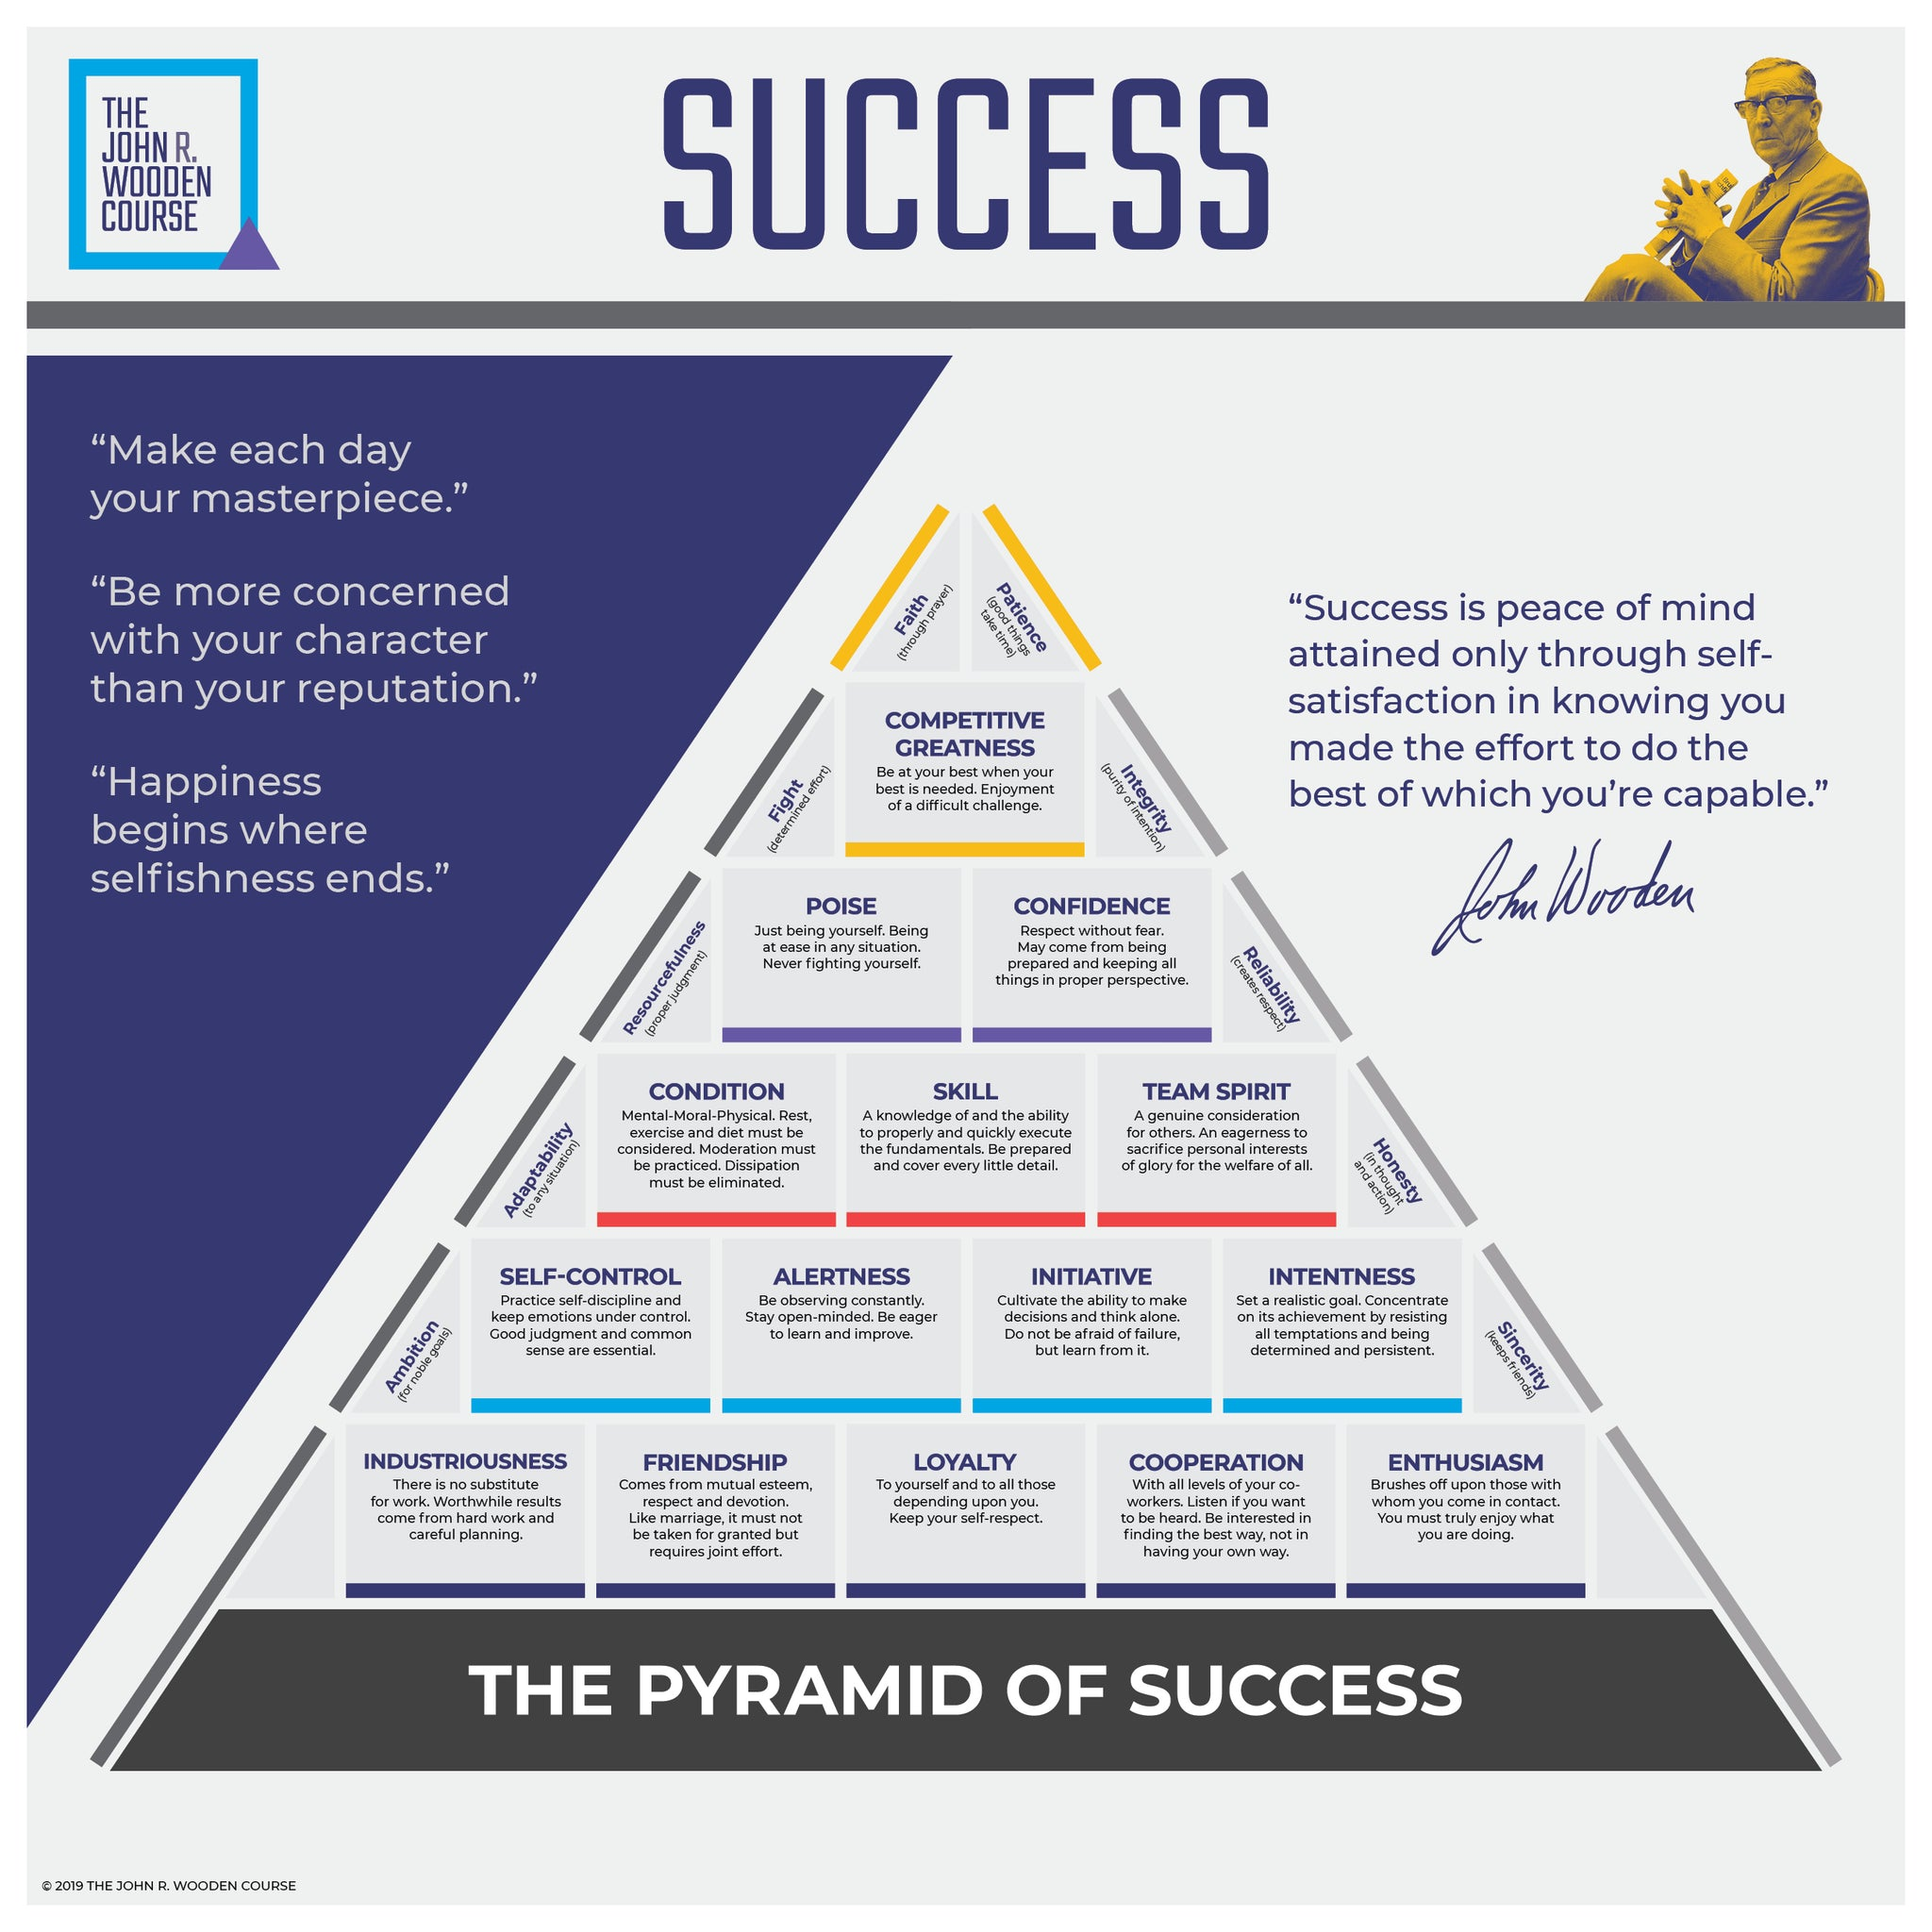 The John R Wooden Course Pyramid Of Success Fathead Wall Graphic